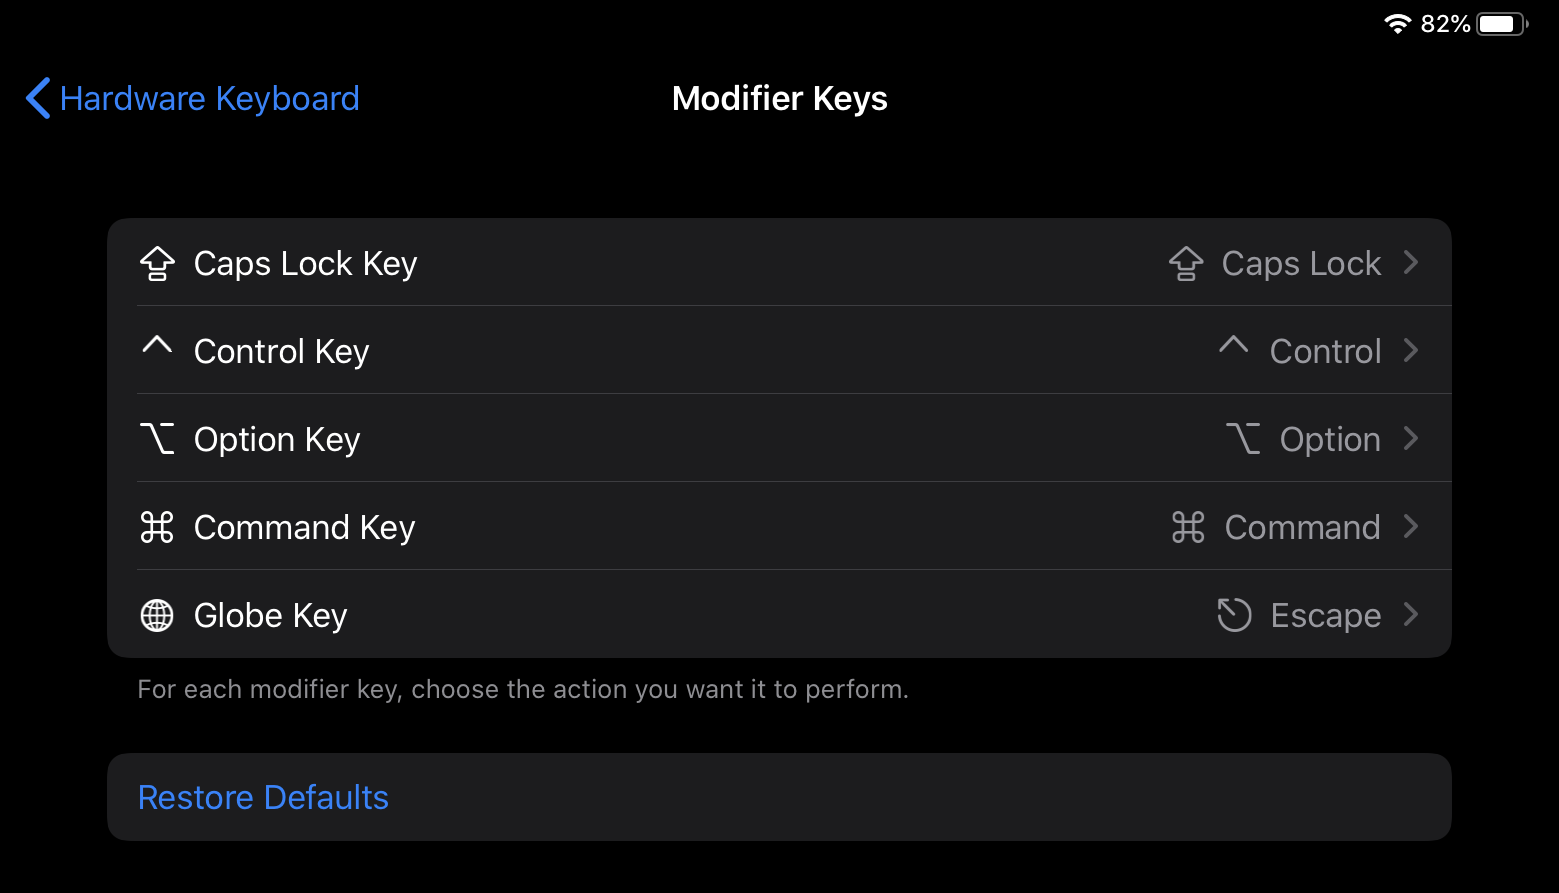 Remapping modifier keys in iPadOS